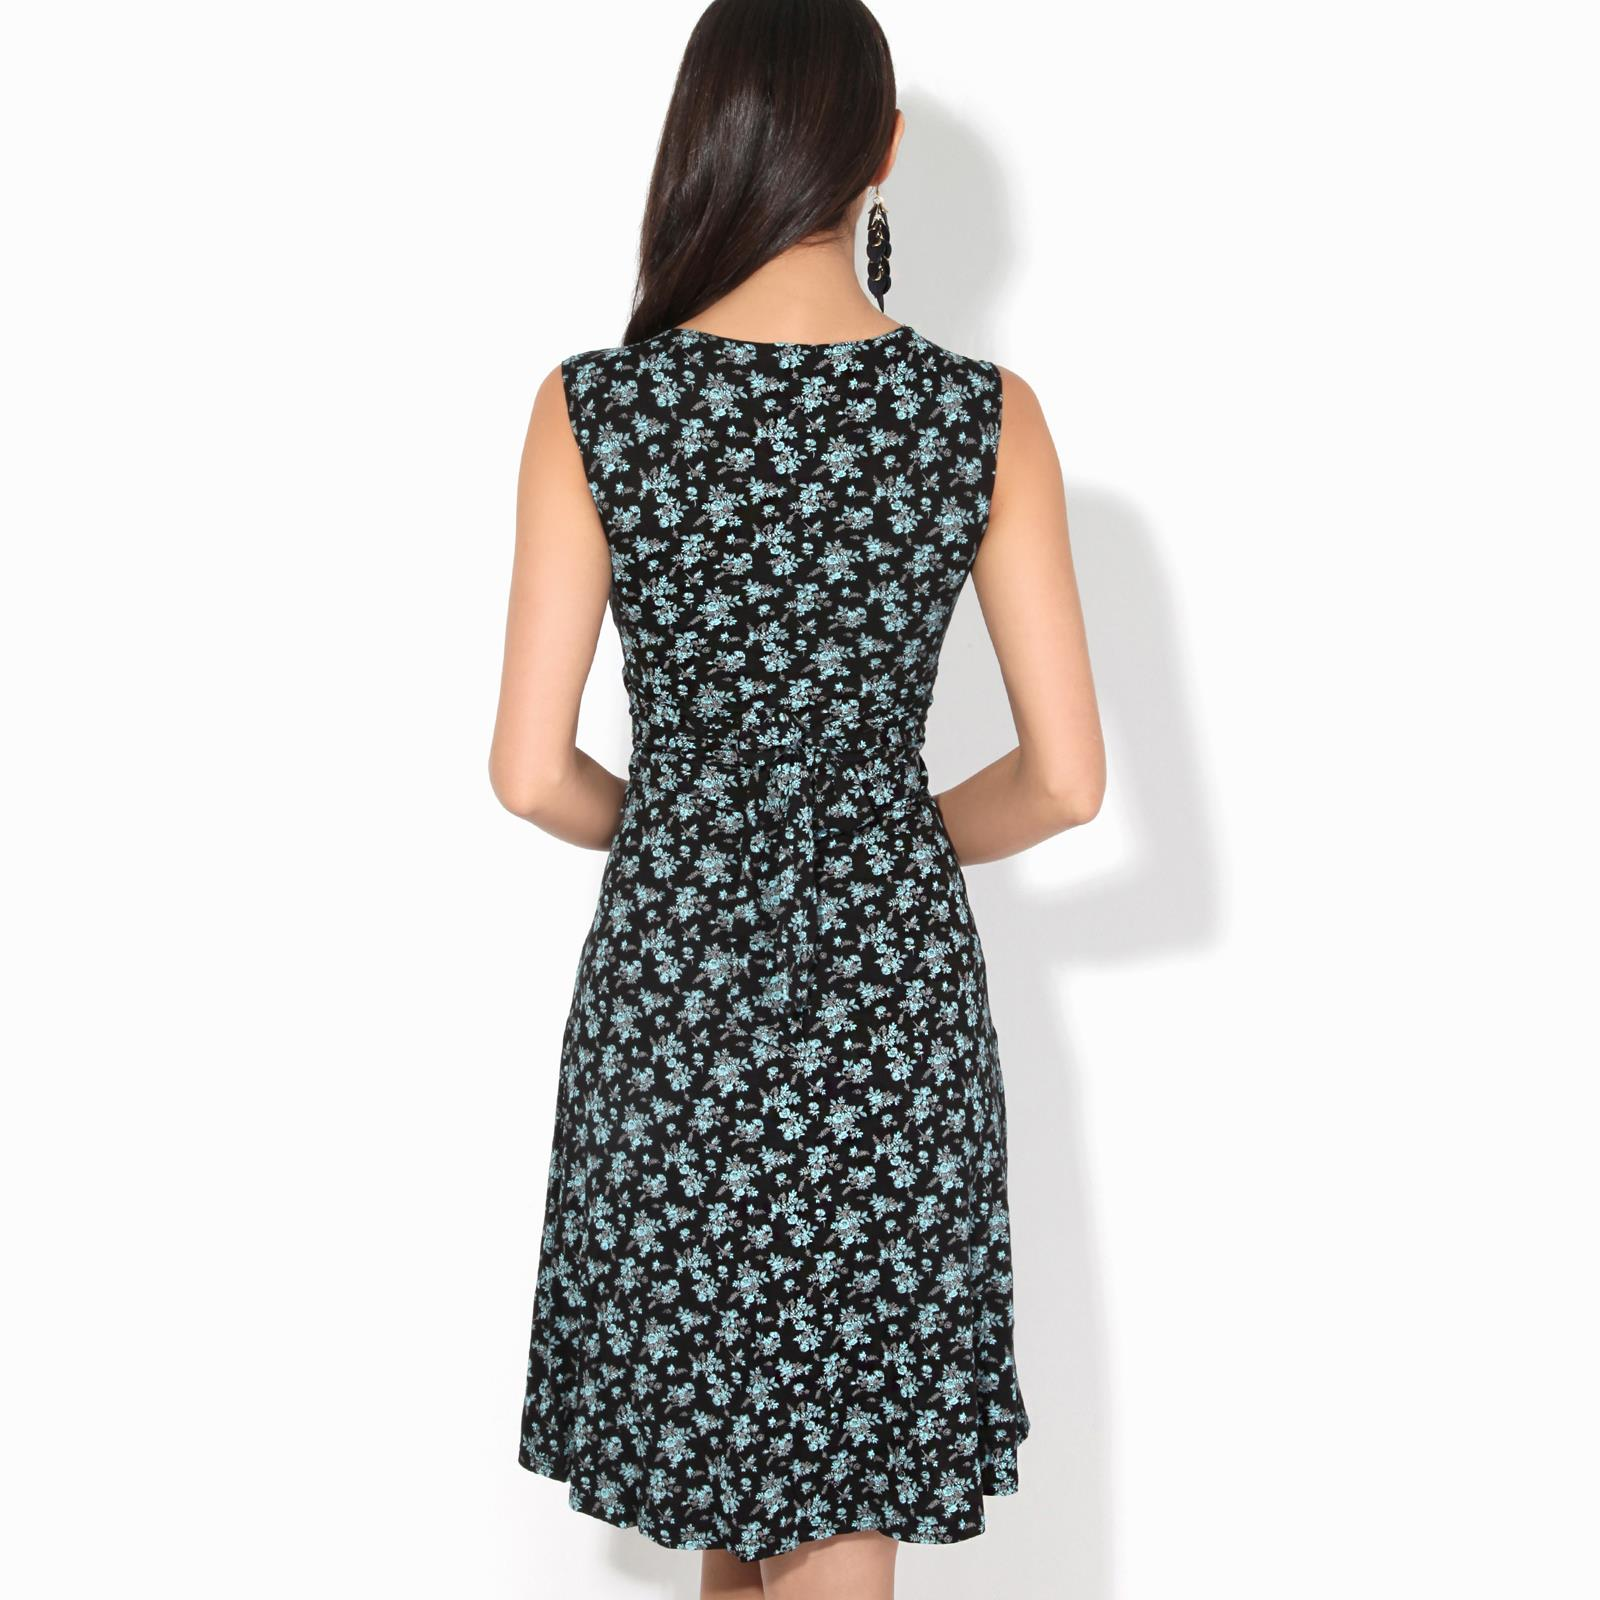 Women-Ladies-Floral-Midi-Dress-Pattern-Sleeveless-V-Neck-Stretch-Casual-Sundress thumbnail 4